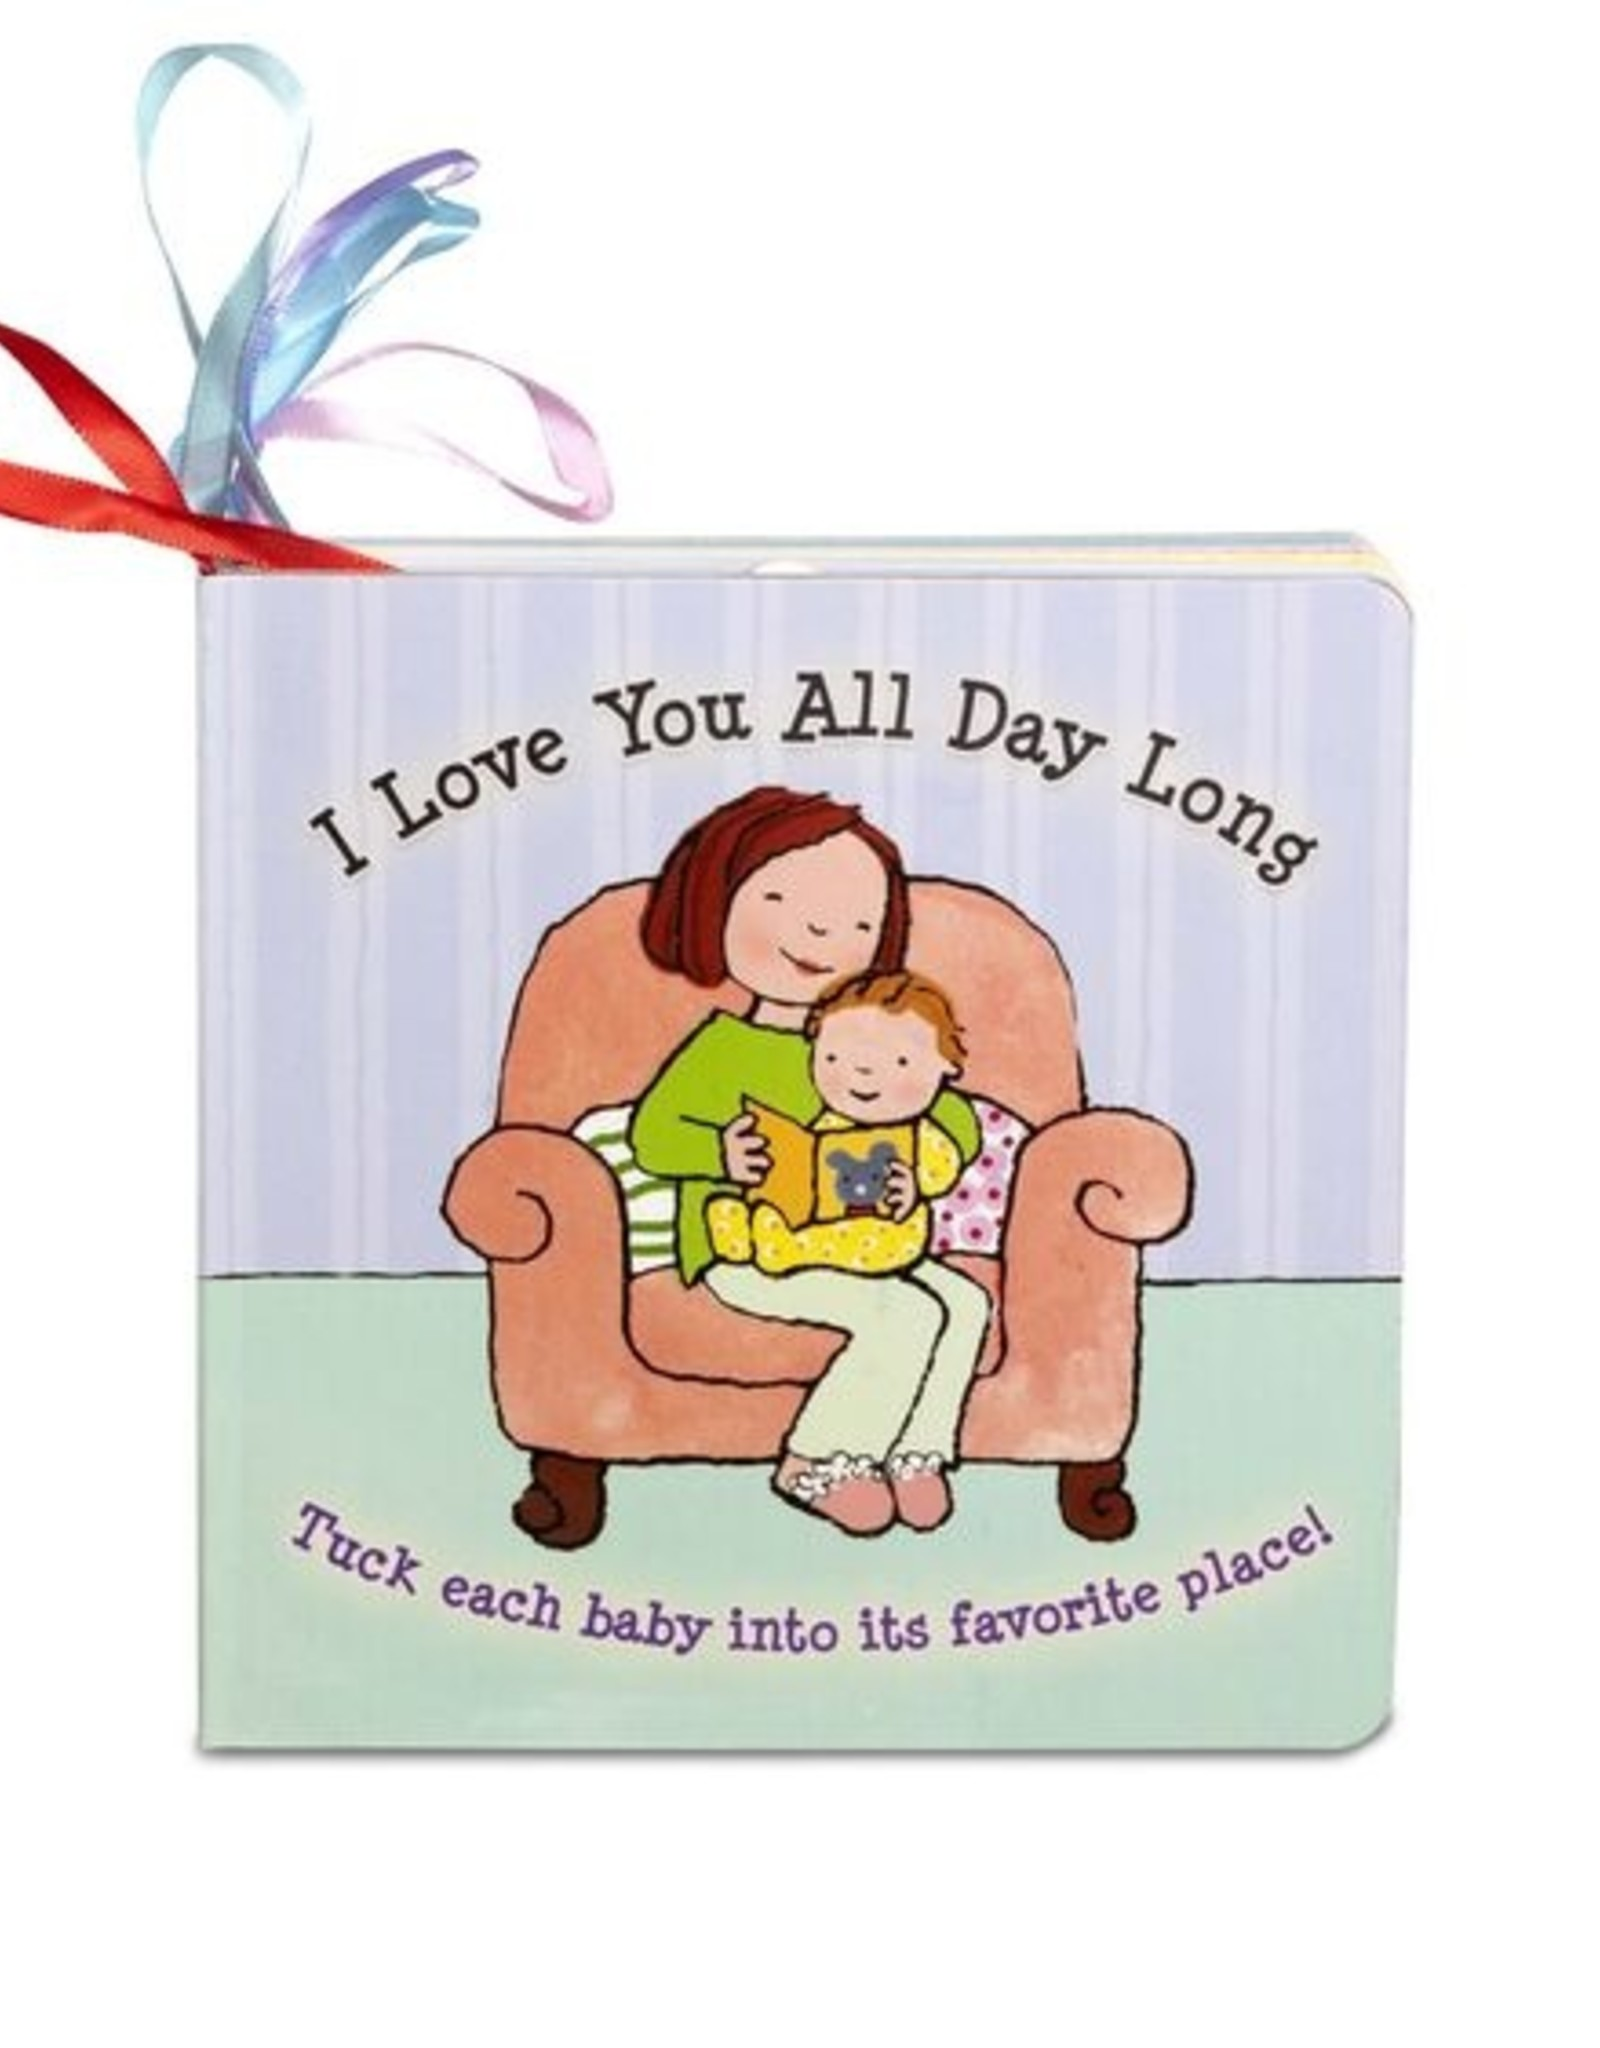 Melissa & Doug I love you all day long